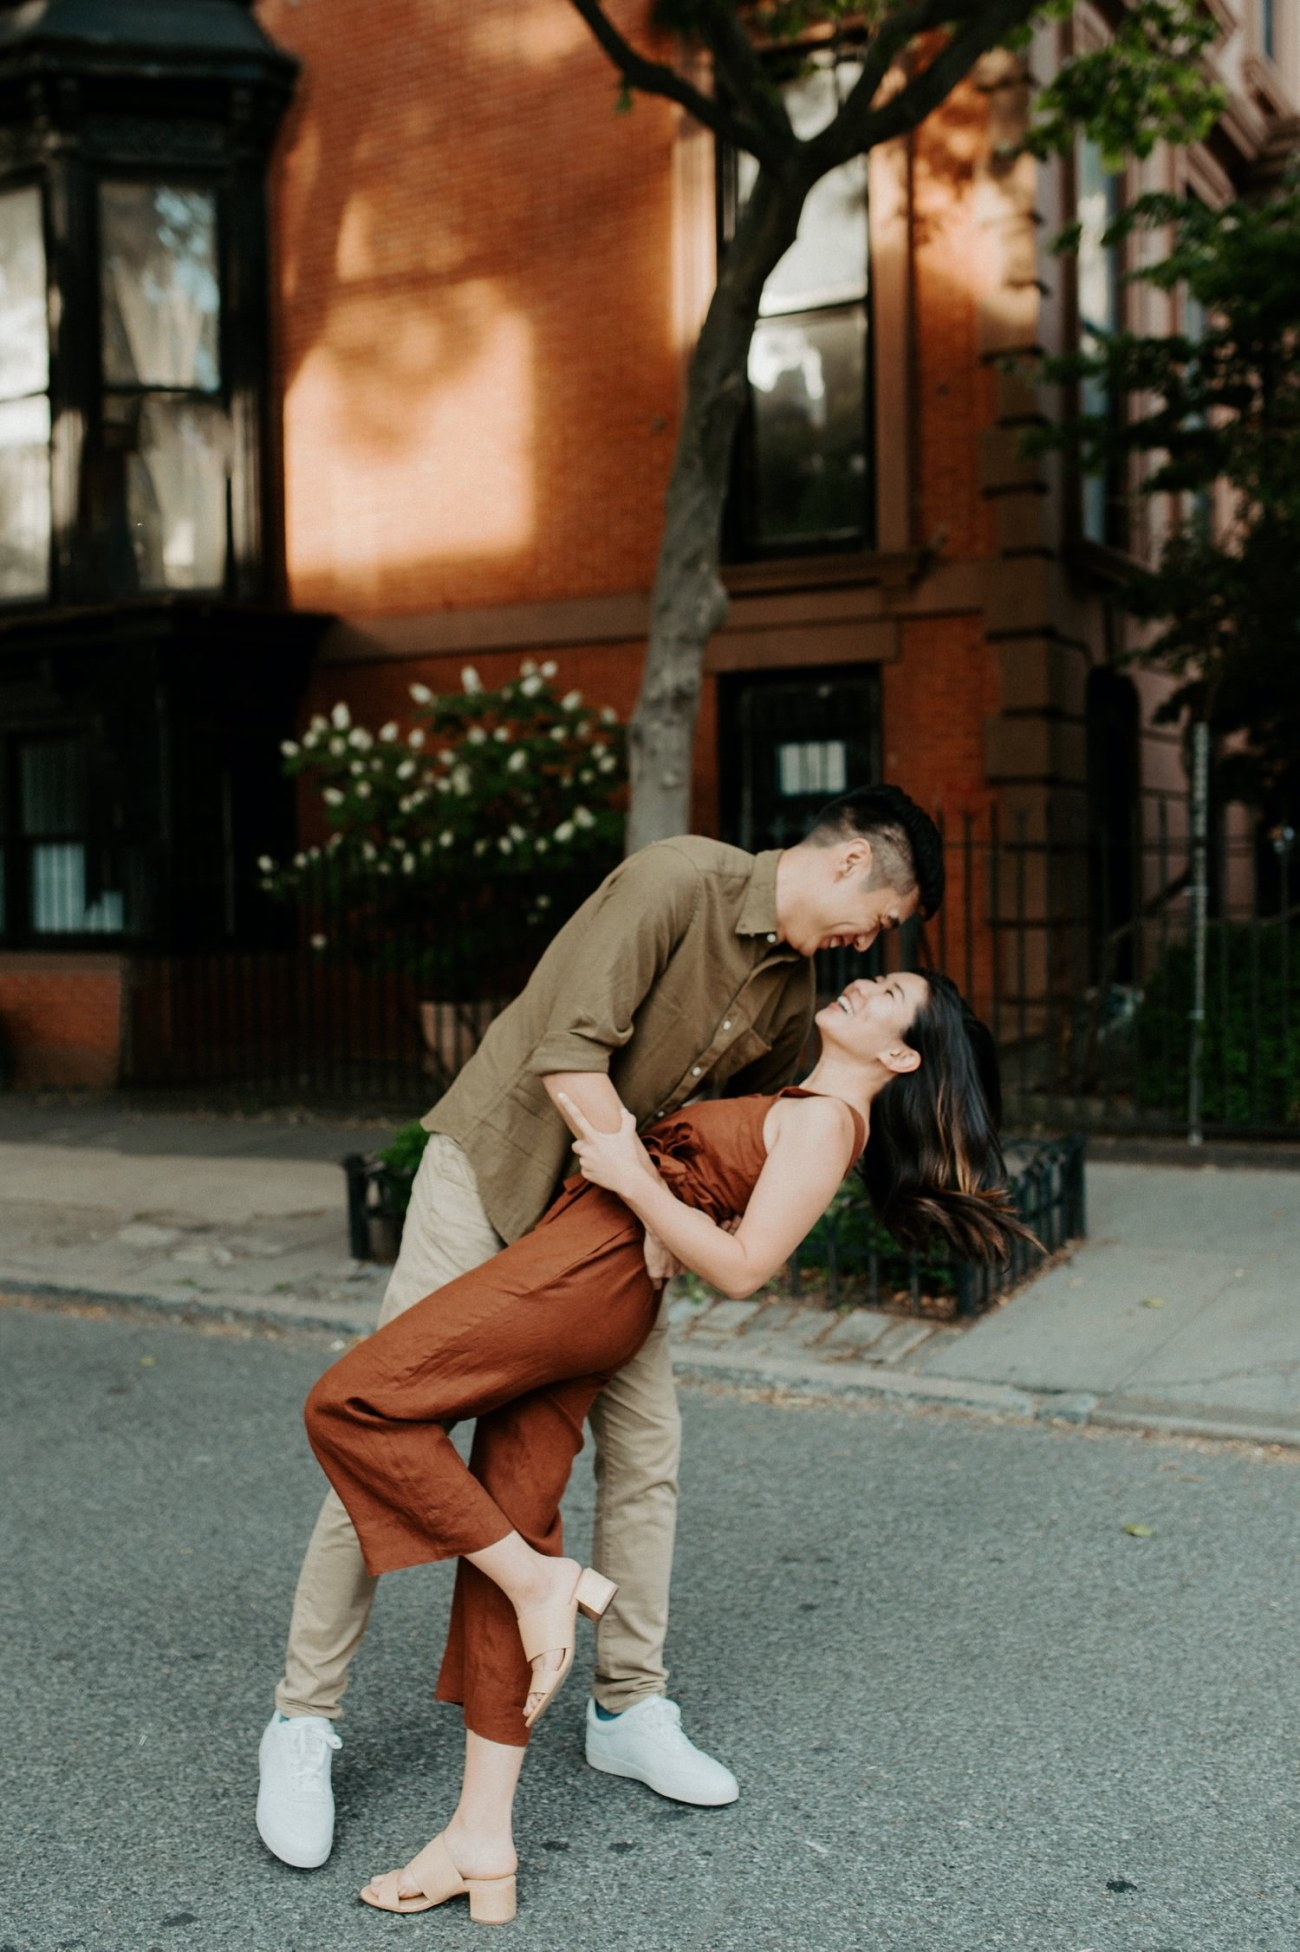 Fort Greene Brooklyn Engagement Session Brooklyn Wedding Photographer New York Wedding Photographer Anais Possamai Photography 003